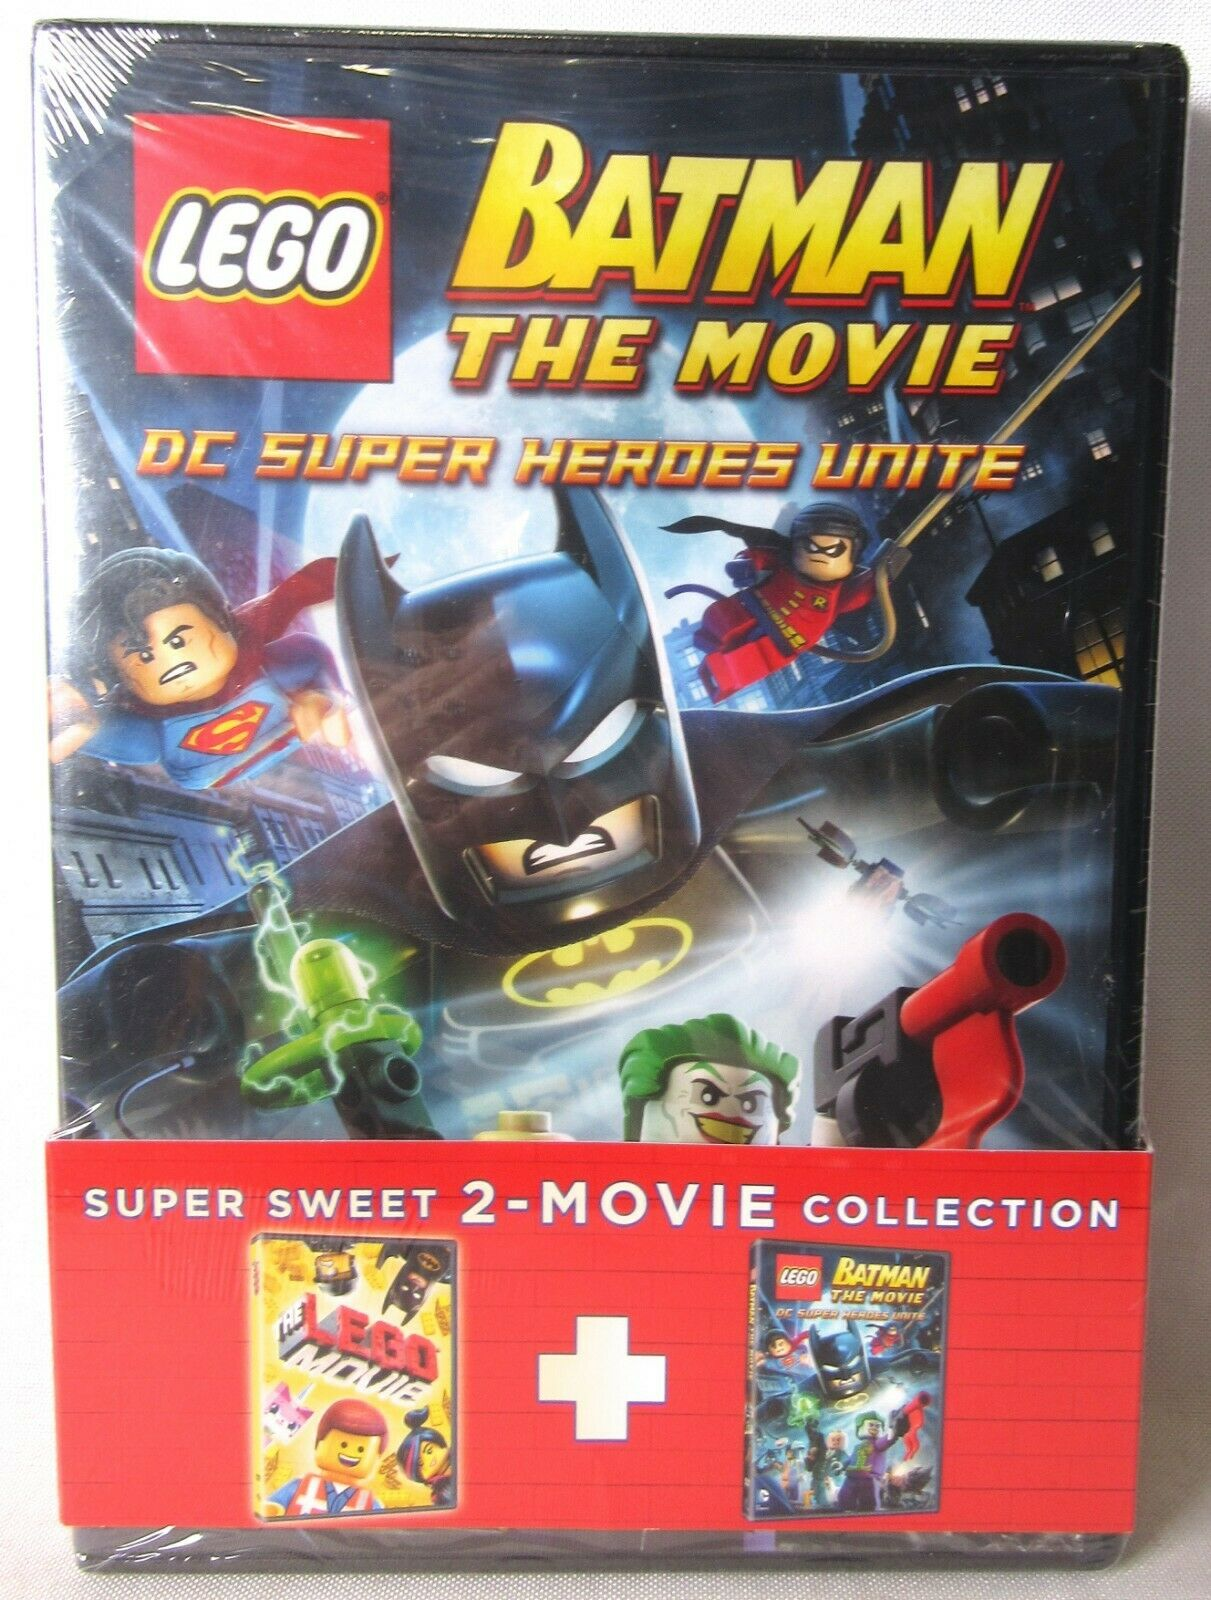 The Lego Movie Lego Batman The Movie Dvd 2015 2 Disc Set New For Sale Online